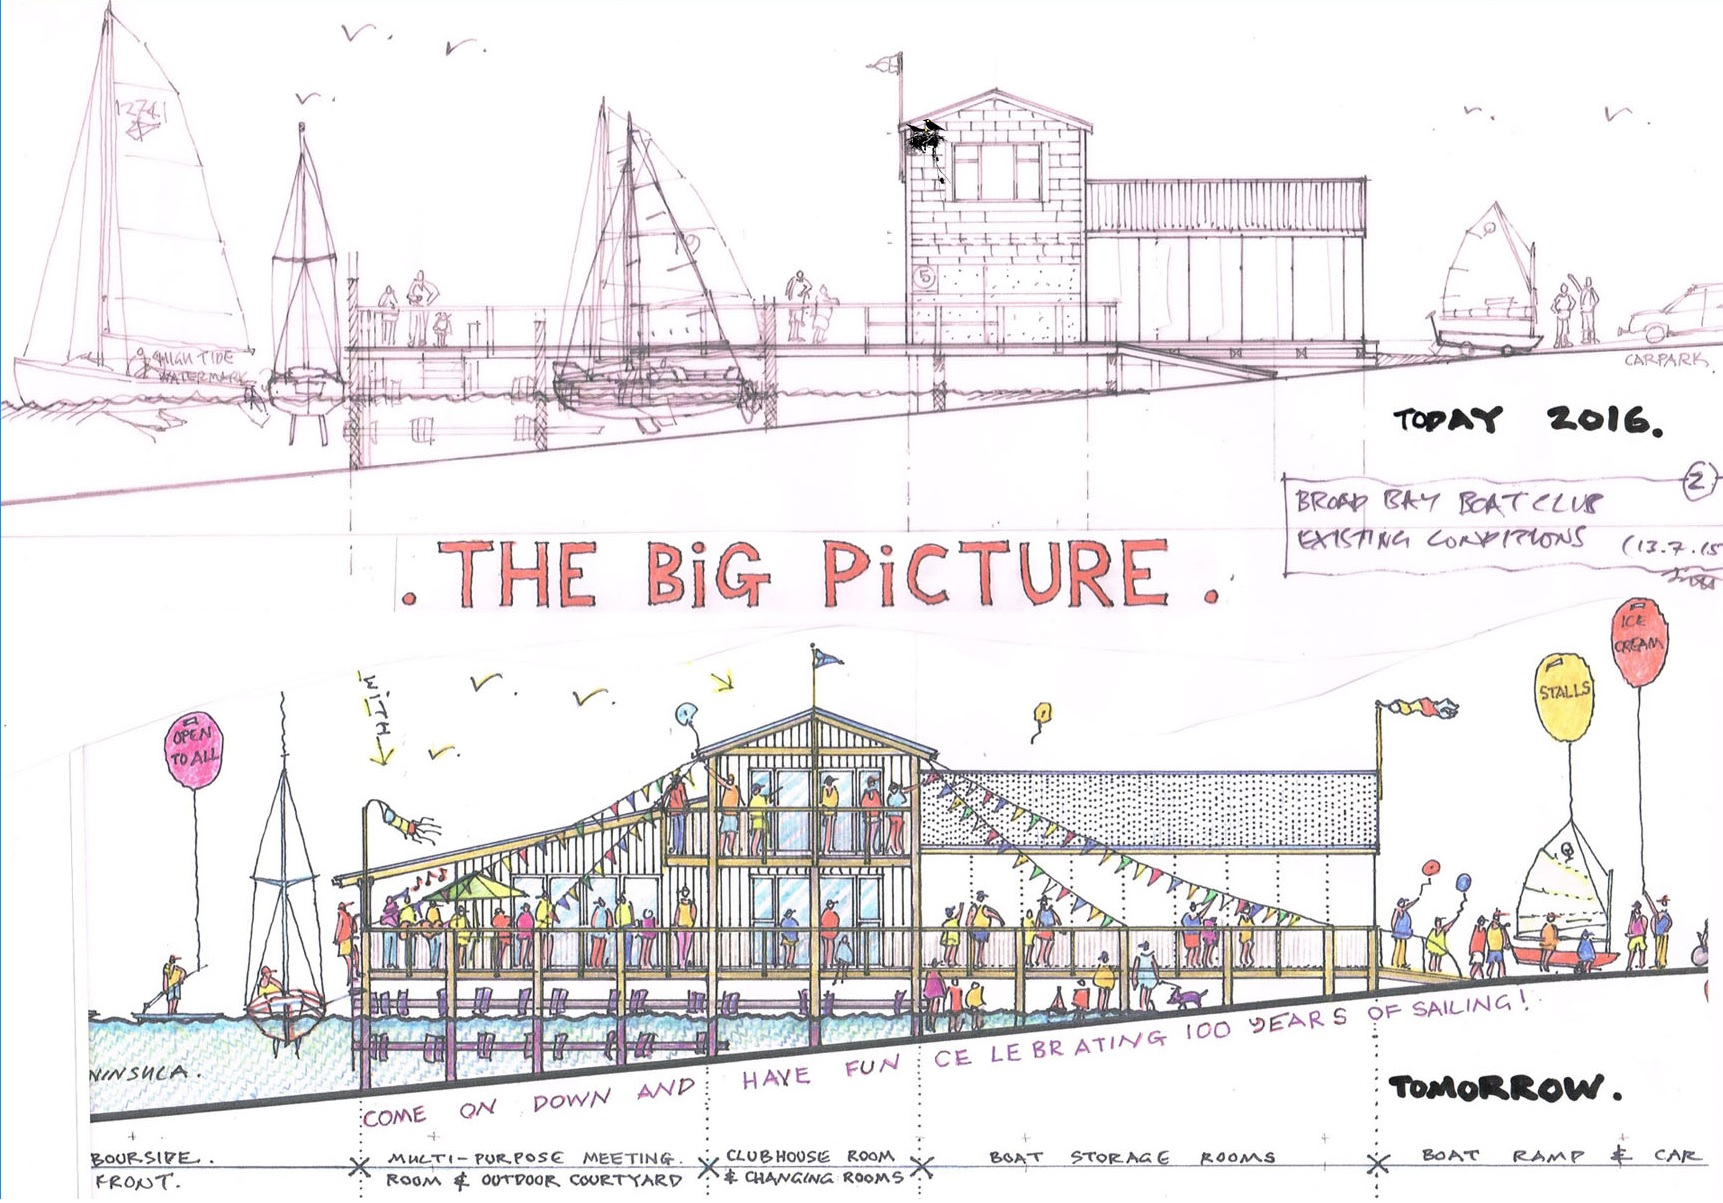 <strong>Proposed Broad Bay Boating Club Redevelopment</strong>